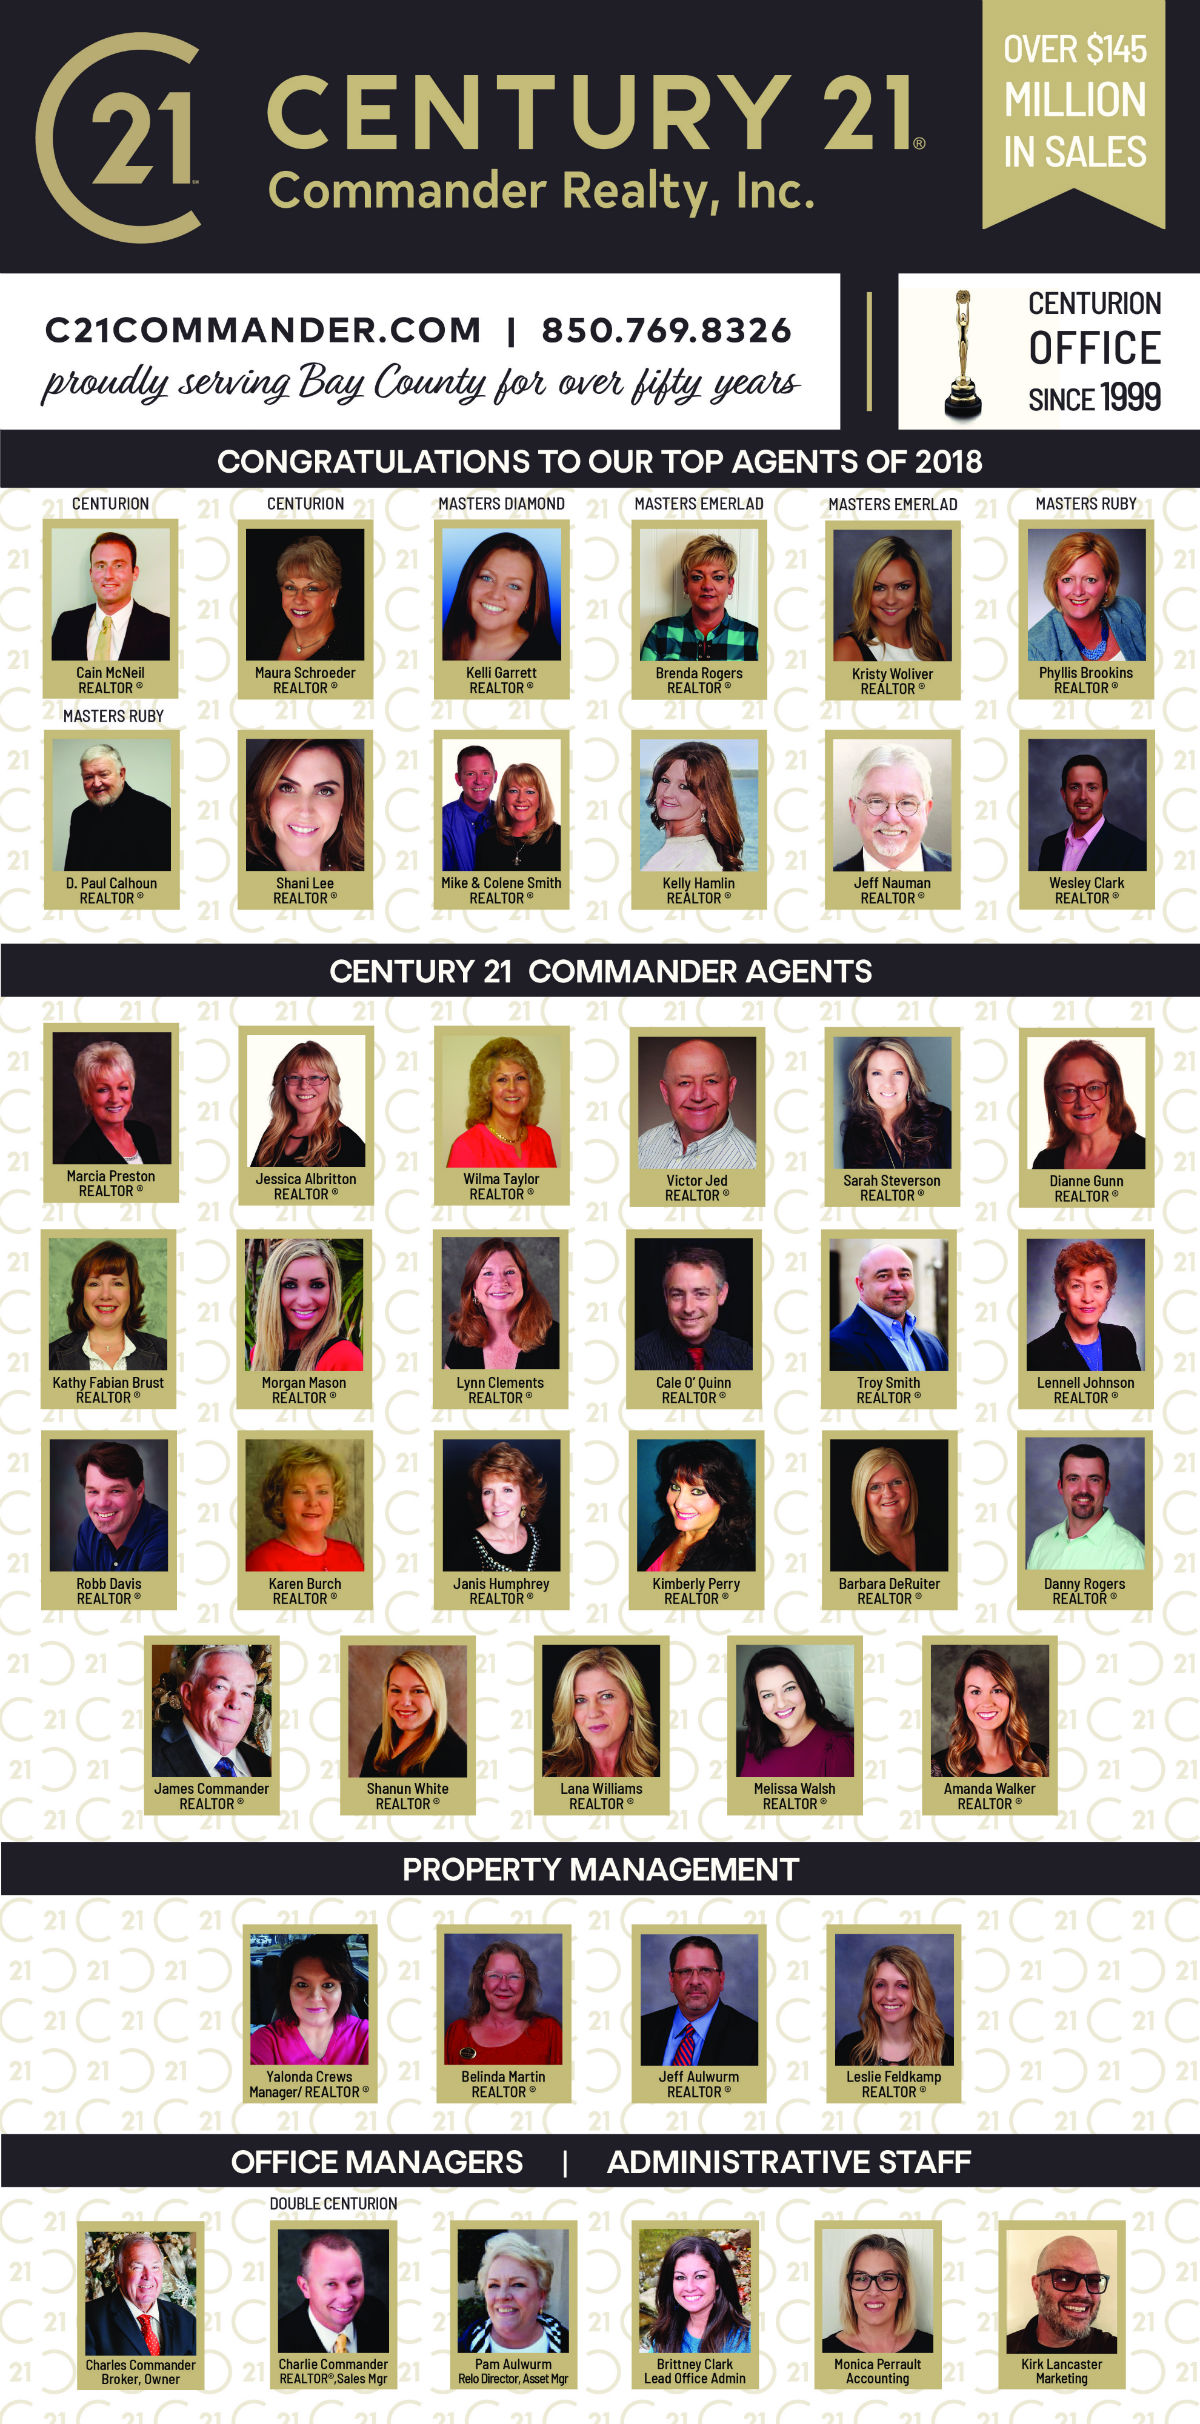 Century 21 Commander Realty Top Agents 2018